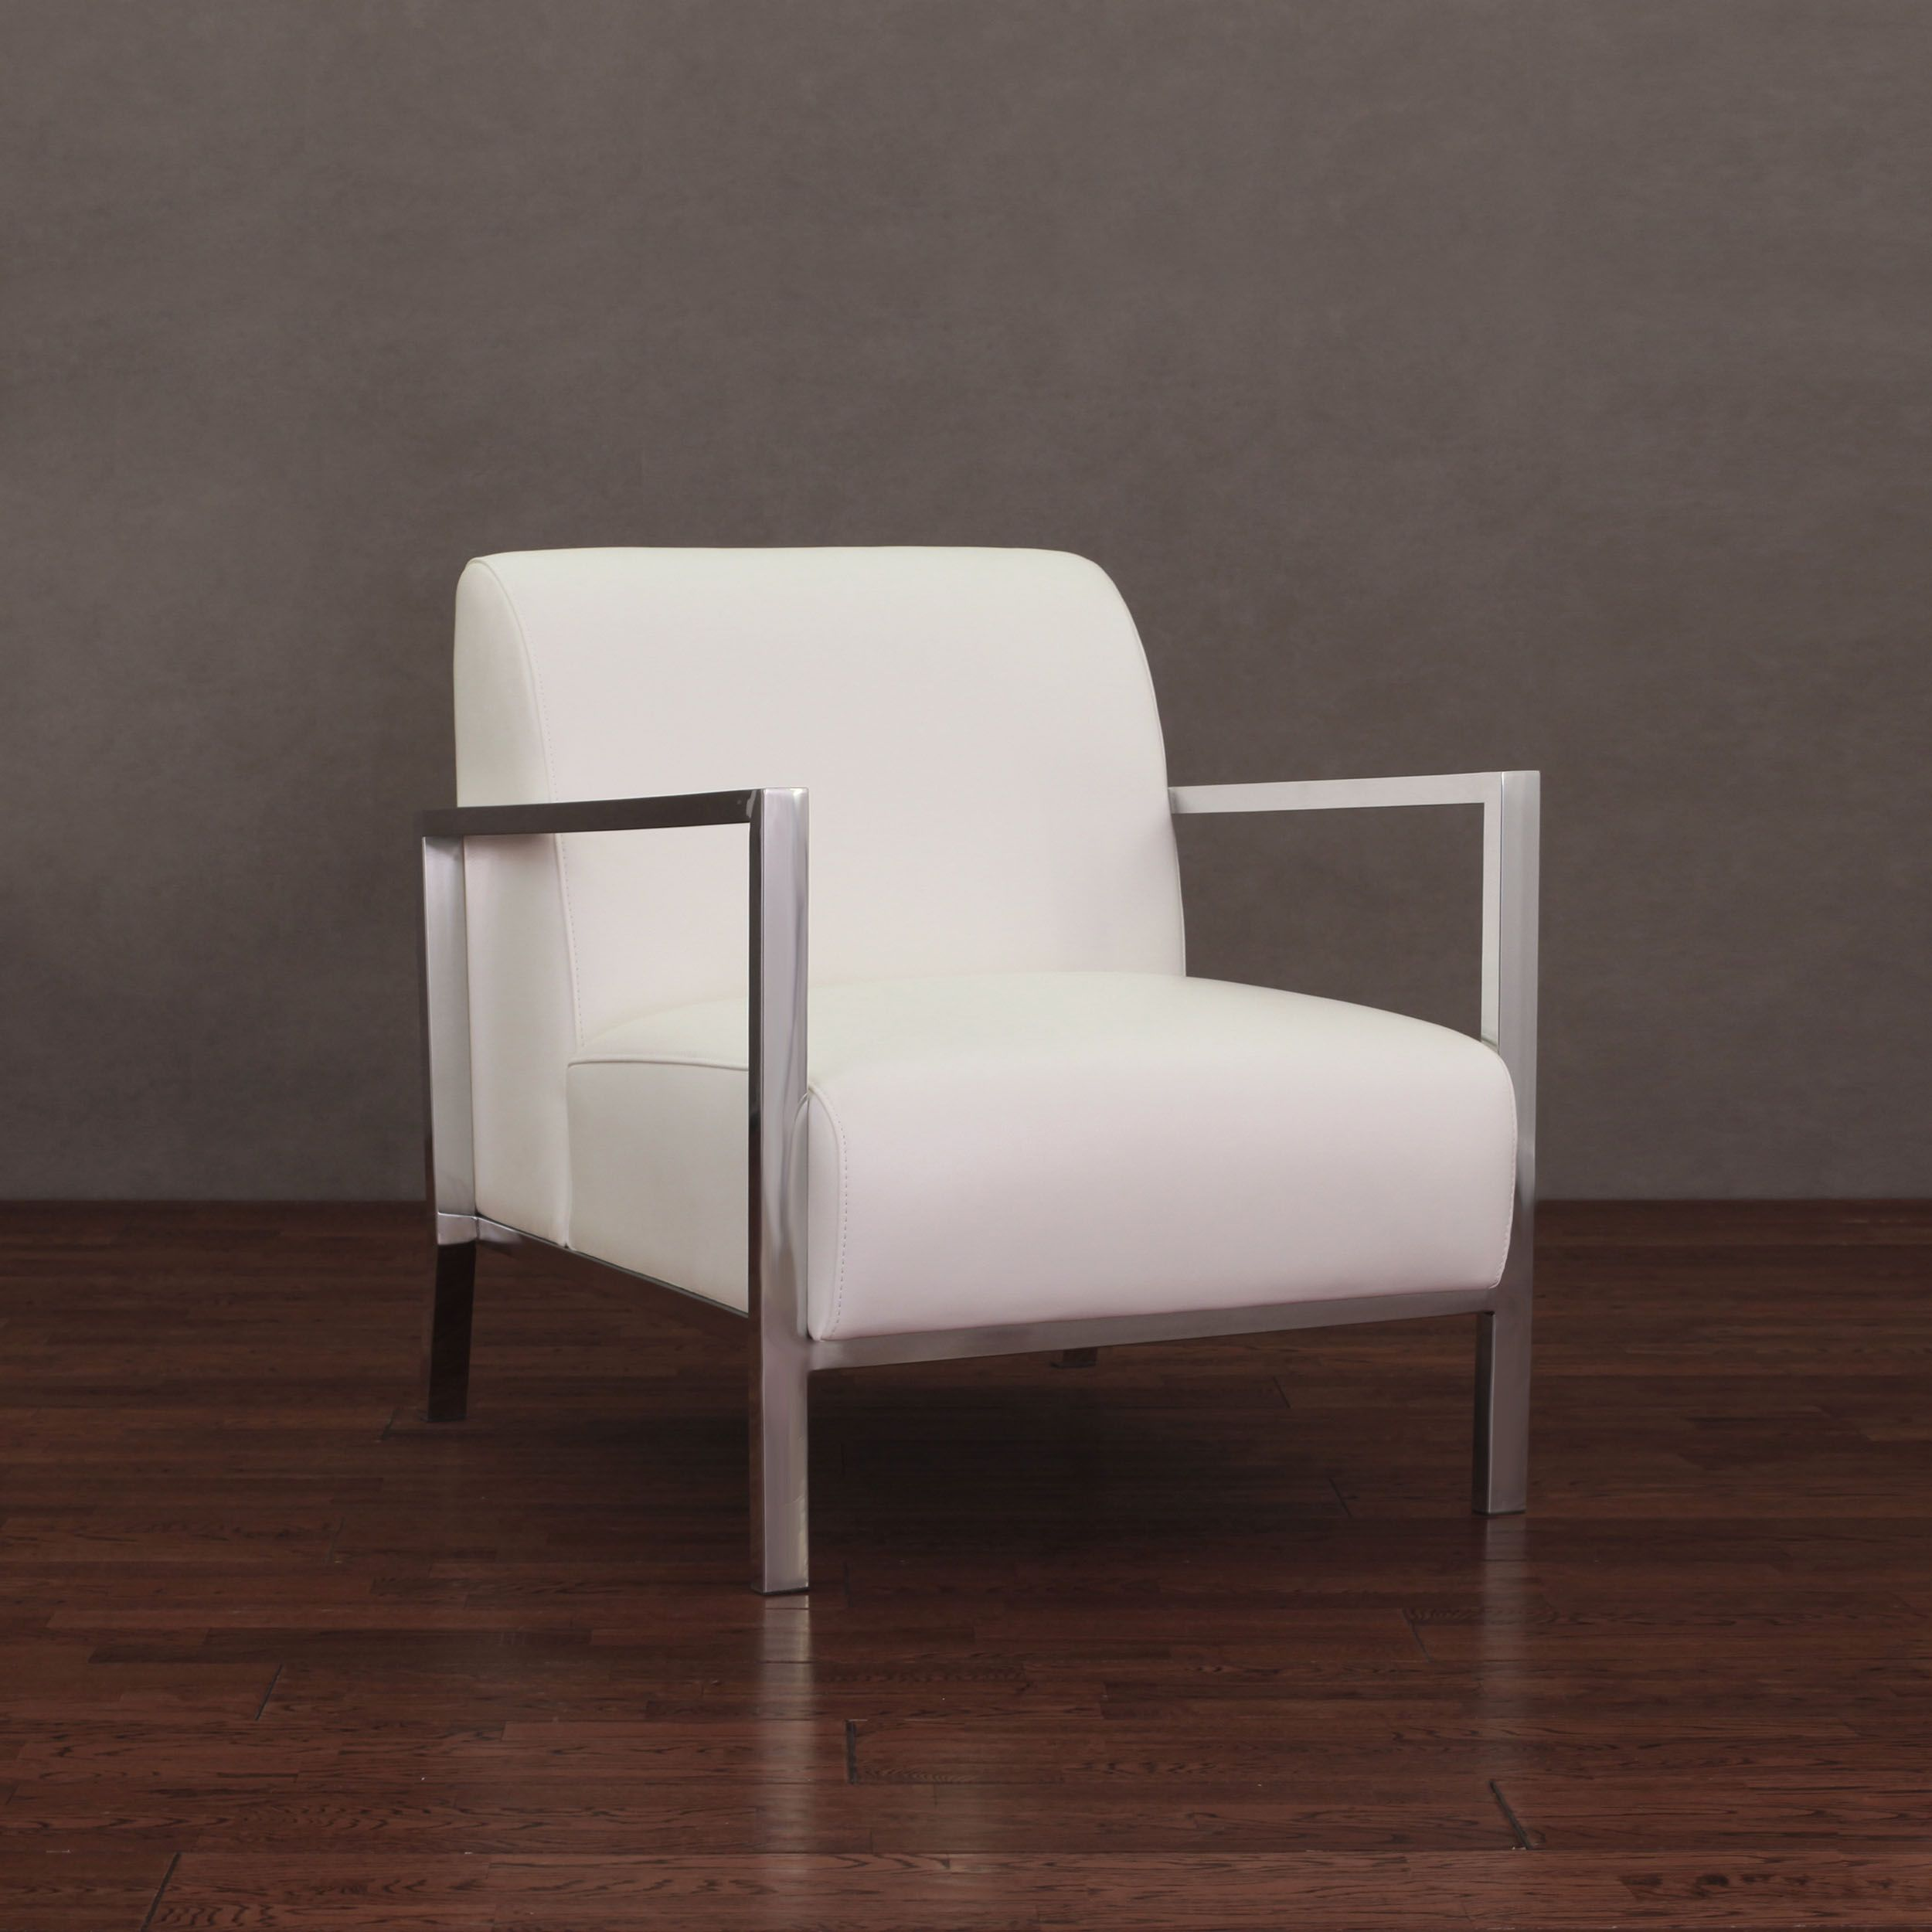 Accent Chairs Modern Give Any Room A Touch Of Modern Style With This White